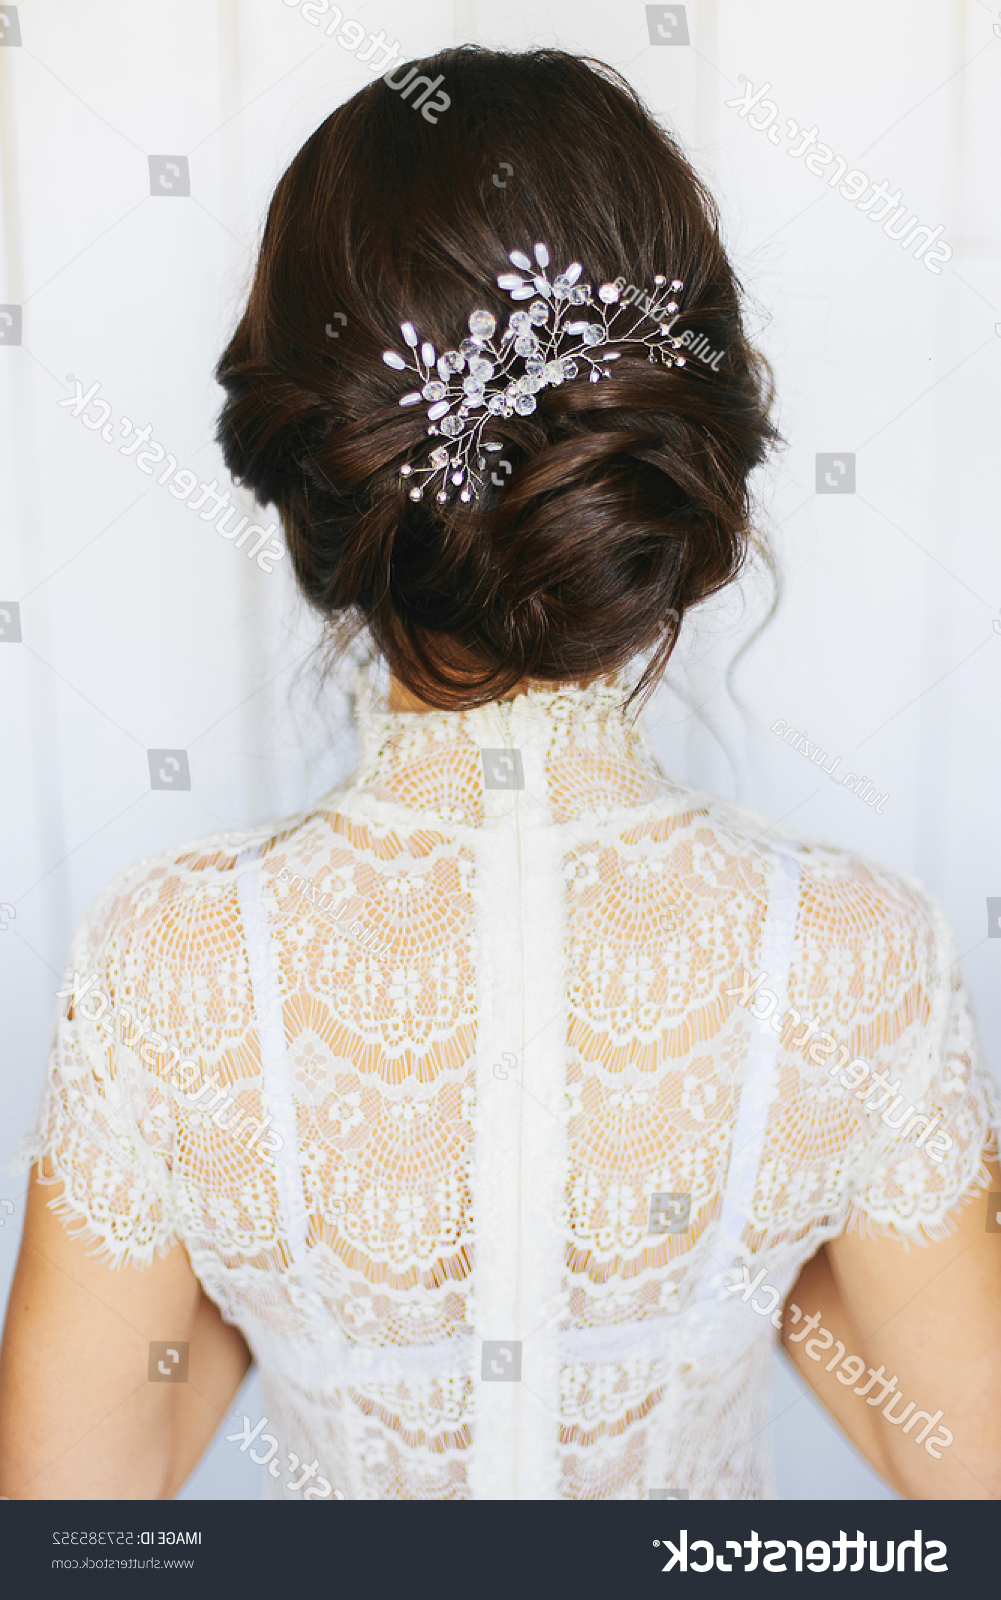 Tender Wedding Stylish Hairstyle Accessories Elegant Stock Photo Inside Popular Tender Bridal Hairstyles With A Veil (View 16 of 20)